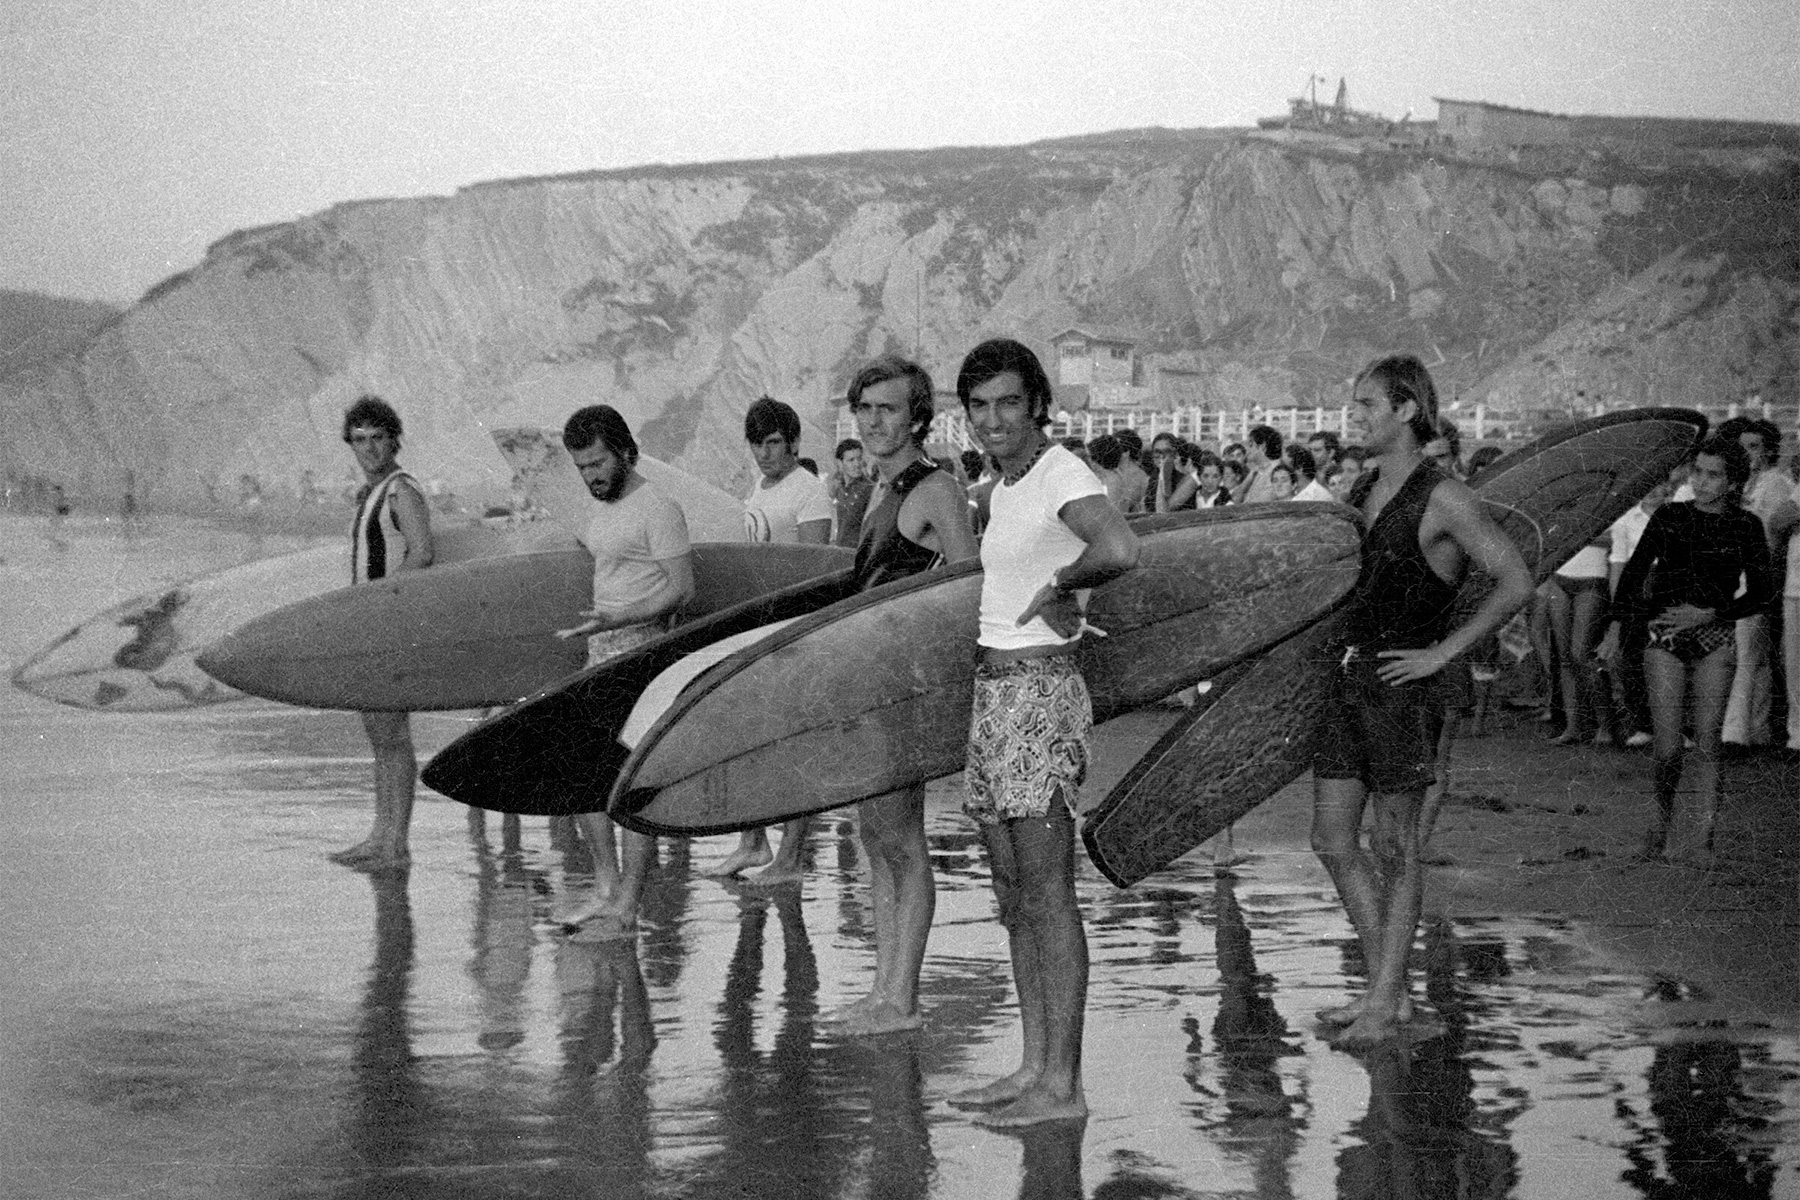 vintage photograph of a group of surfers at one of the first surf contests in spain